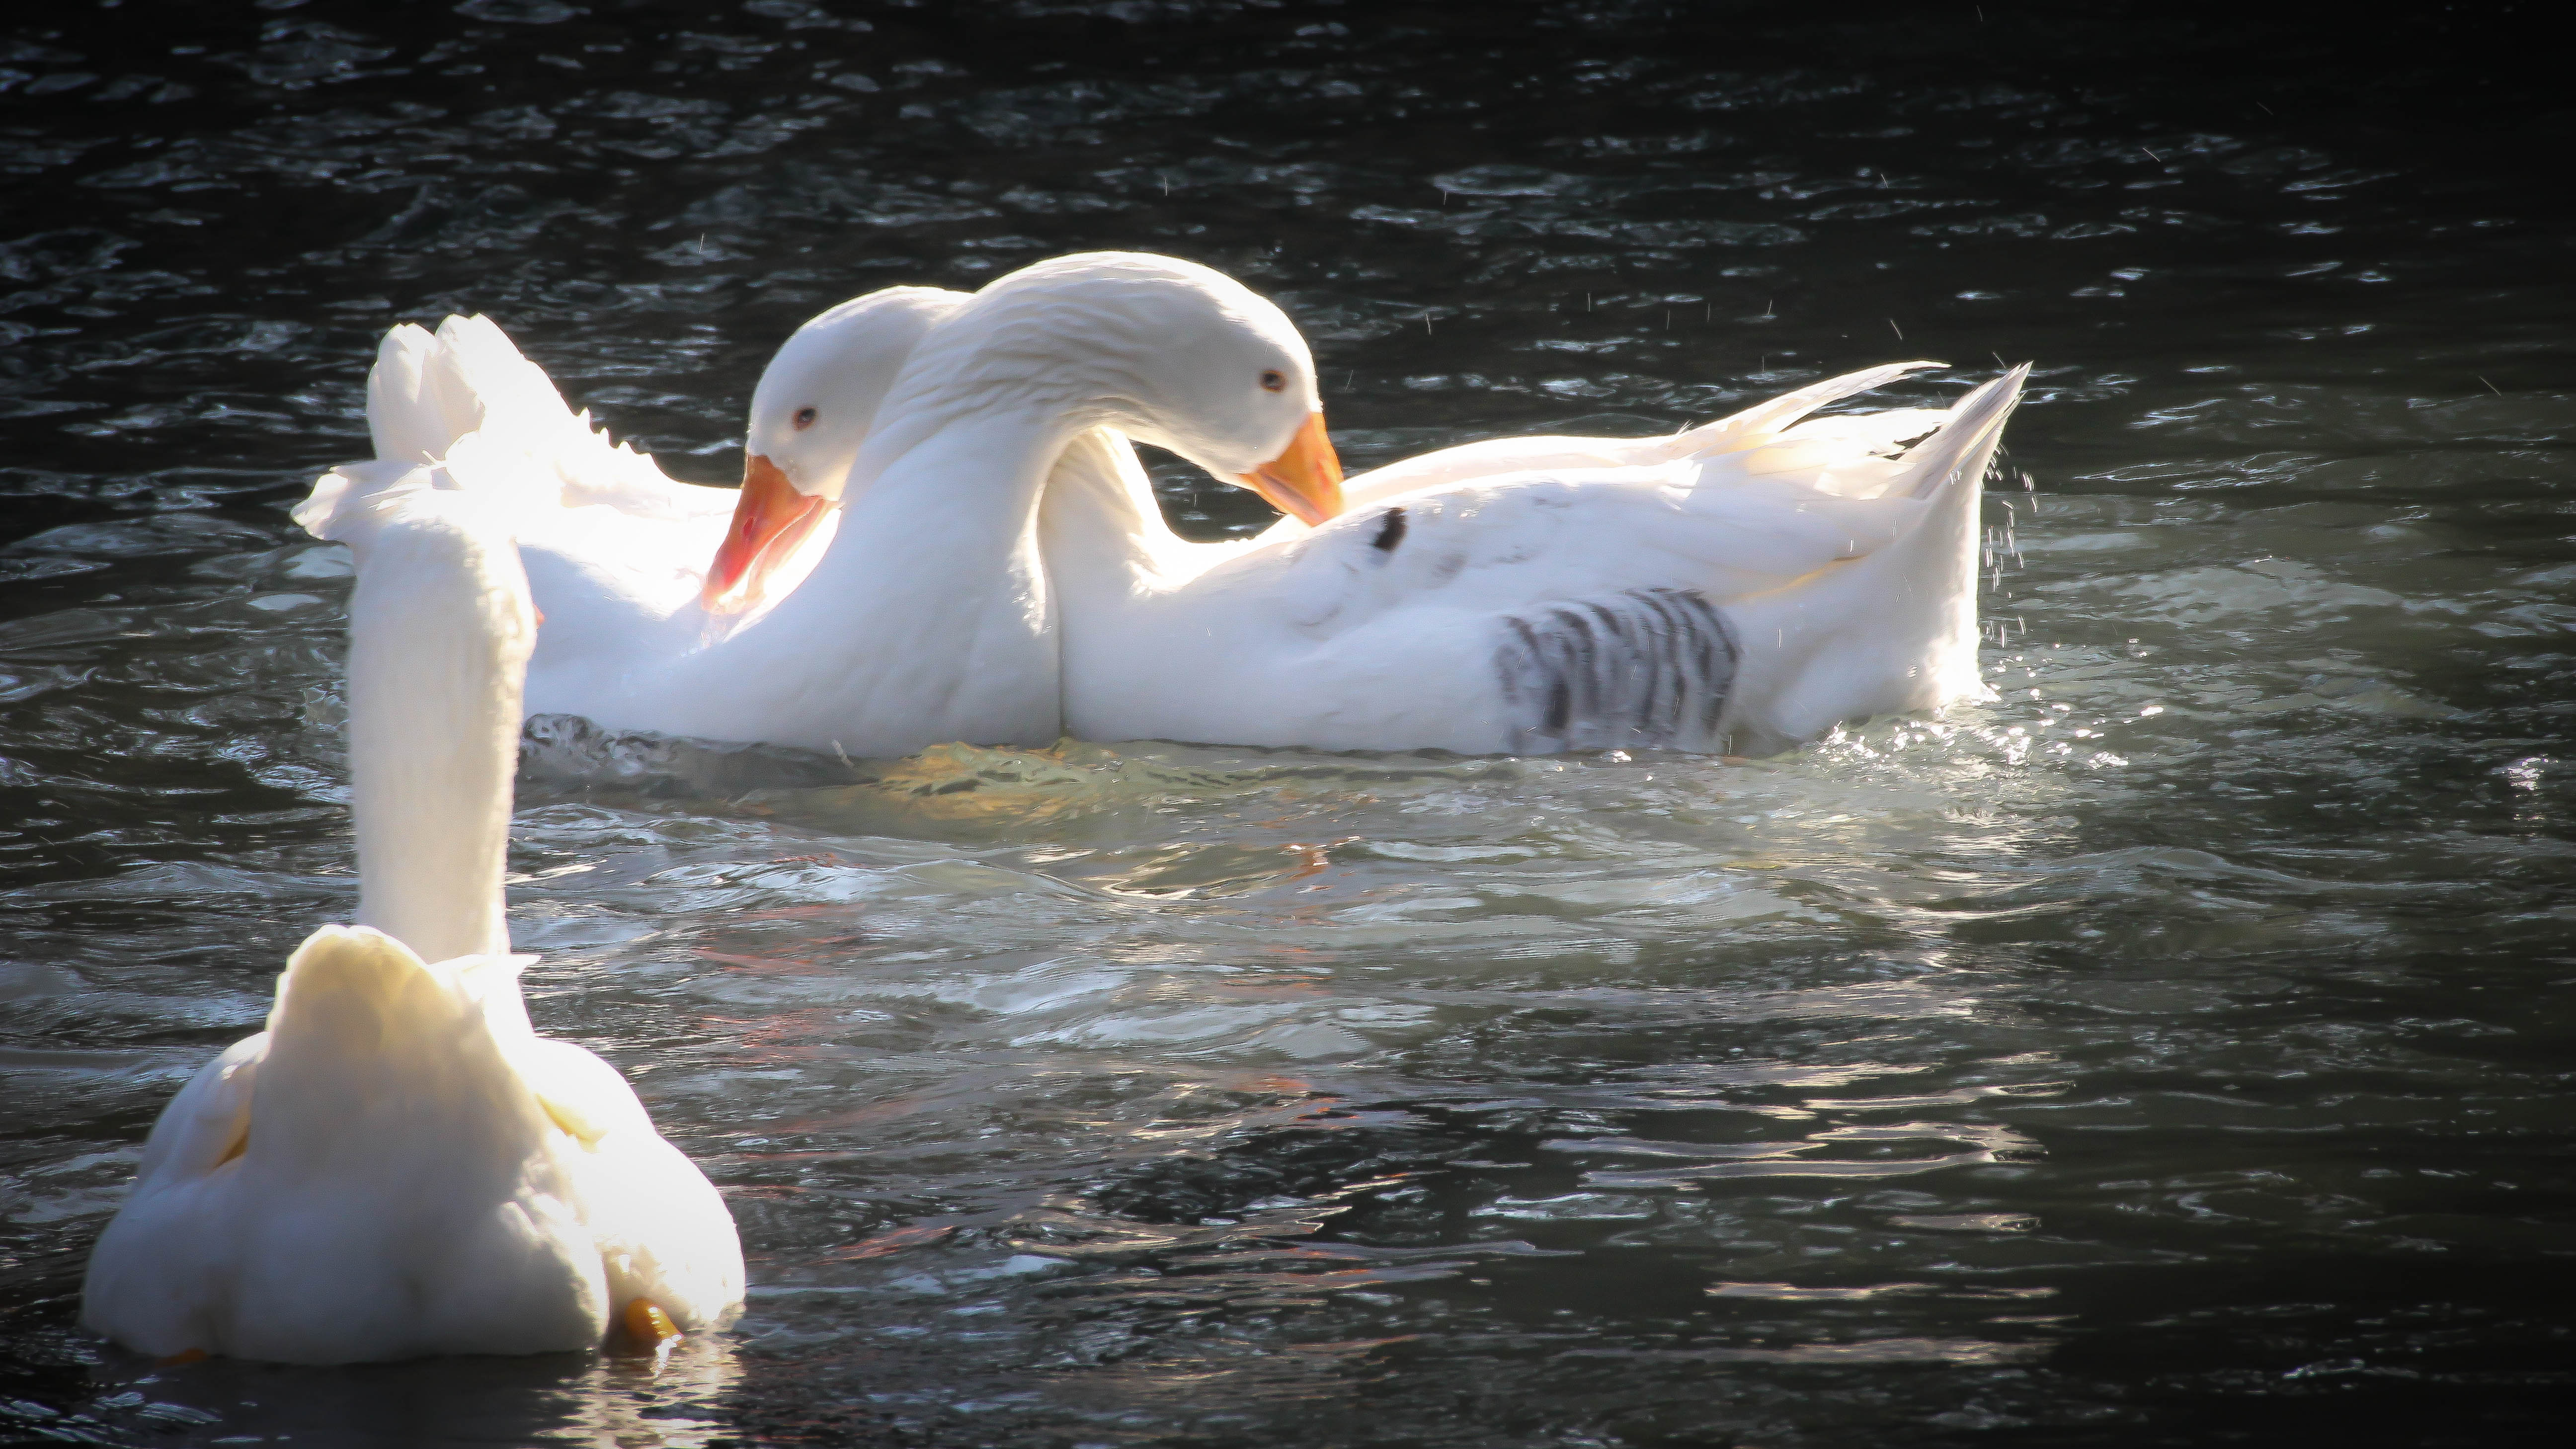 swans scratching each other's backs